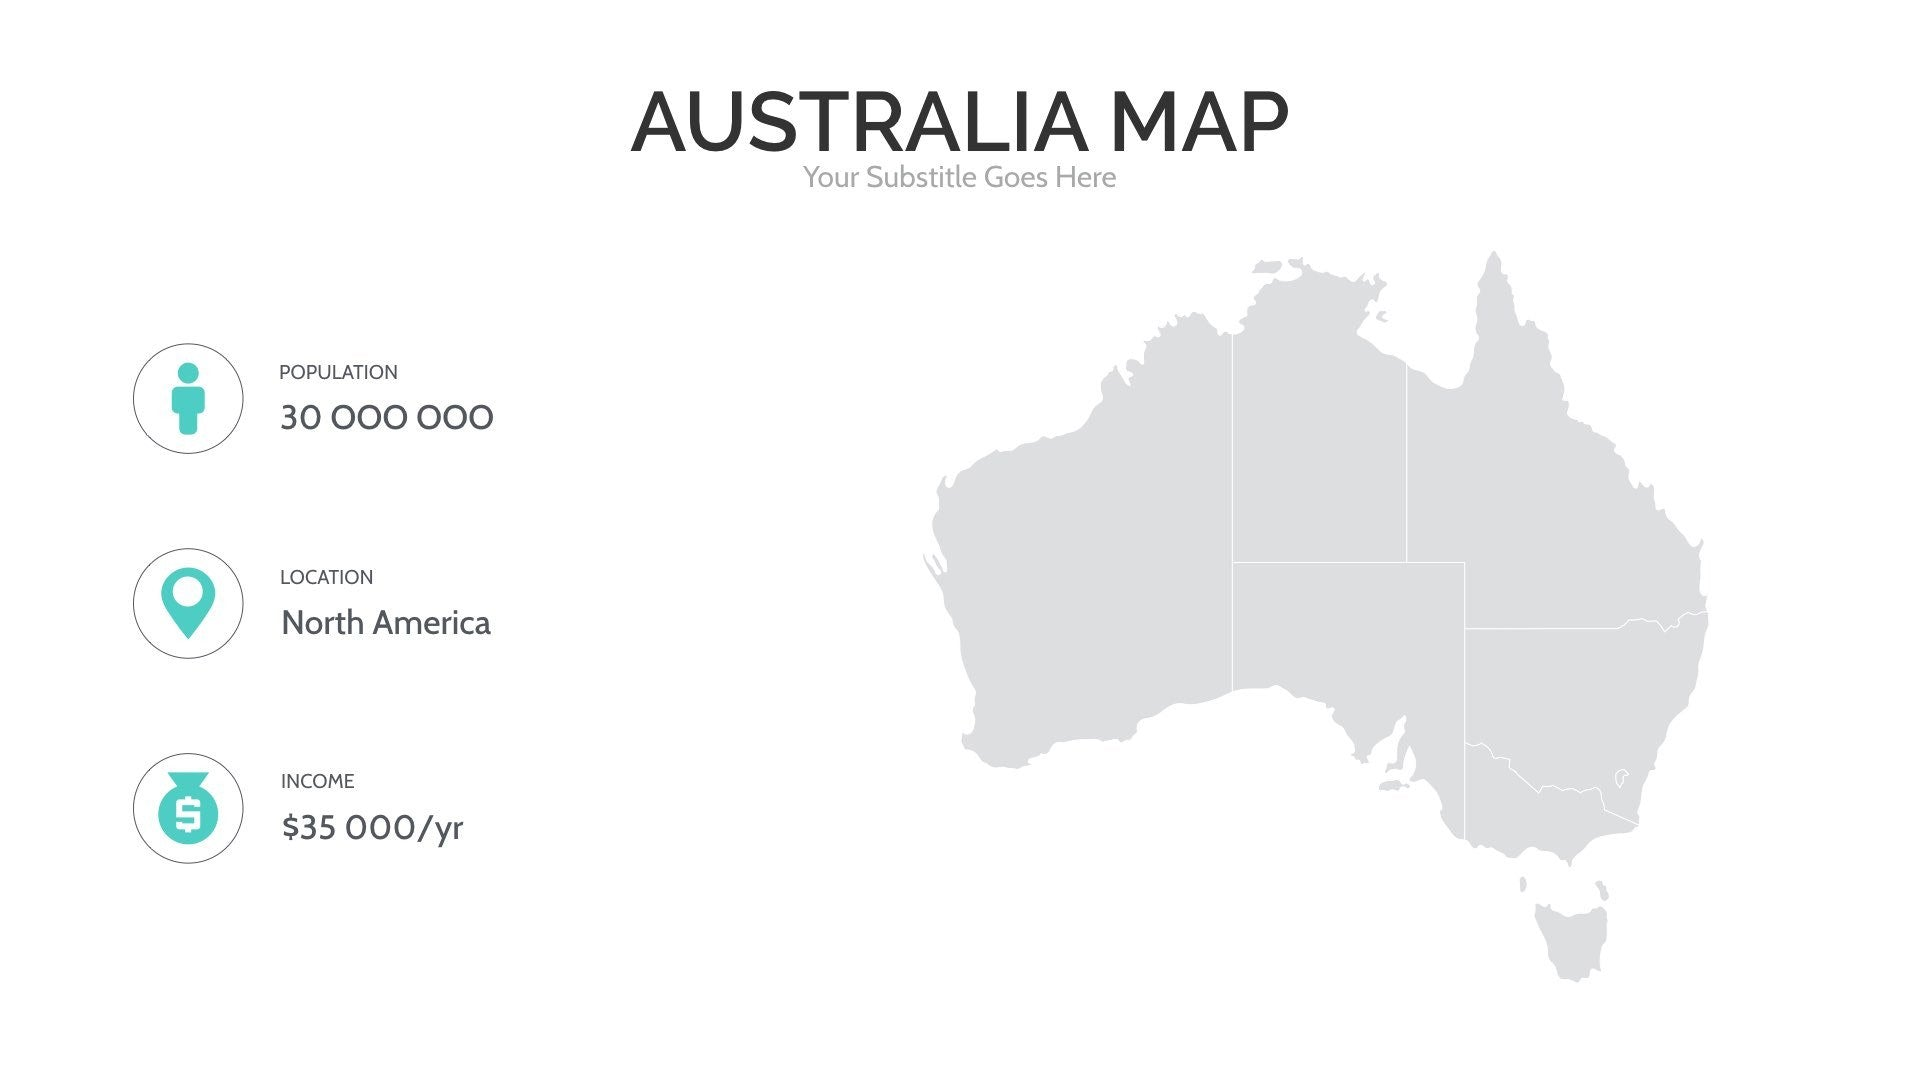 Australia Map Picture.Australia Map For Powerpoint Keynote Presentation Shop